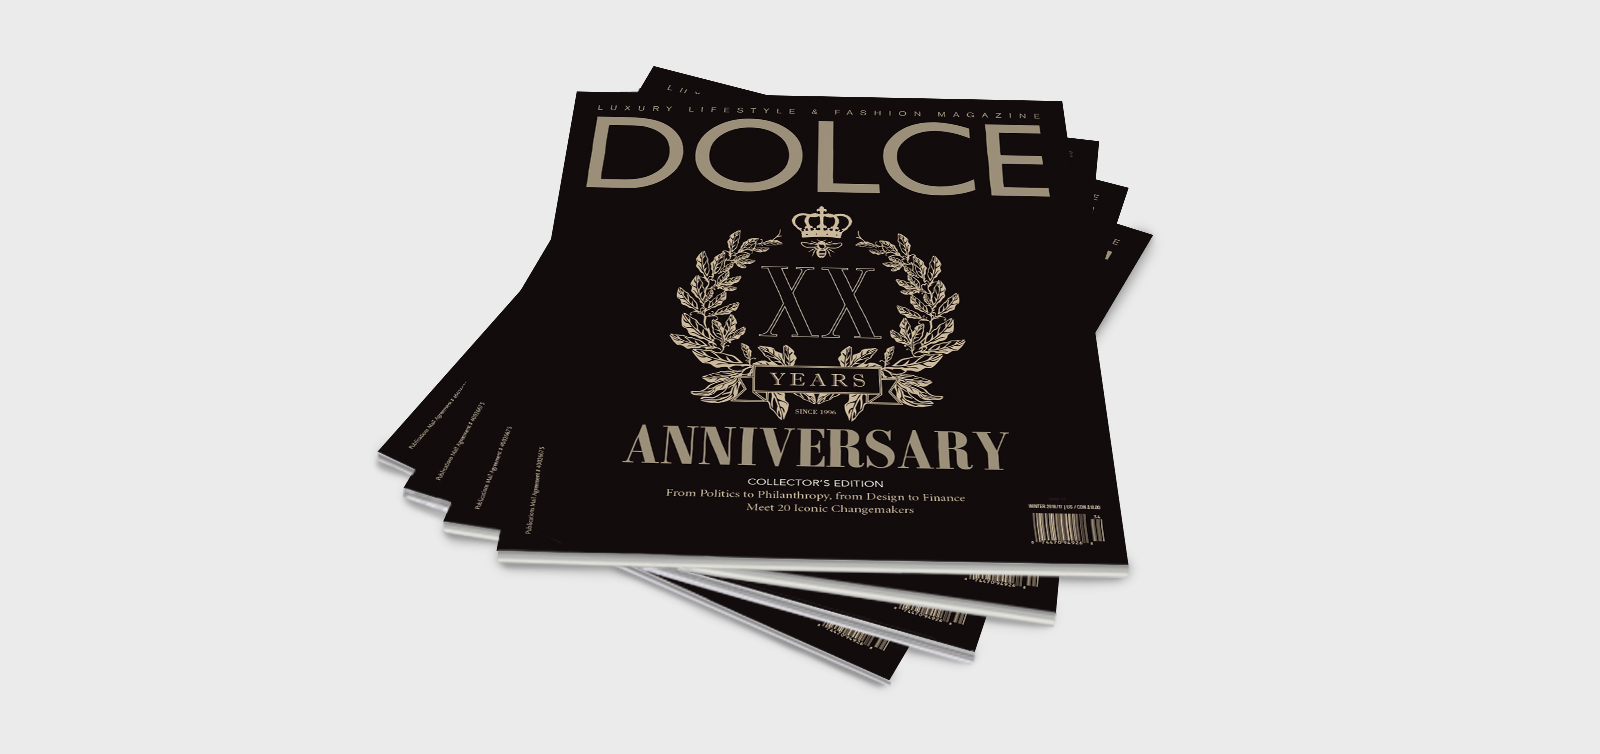 Dolce Magazine Covers